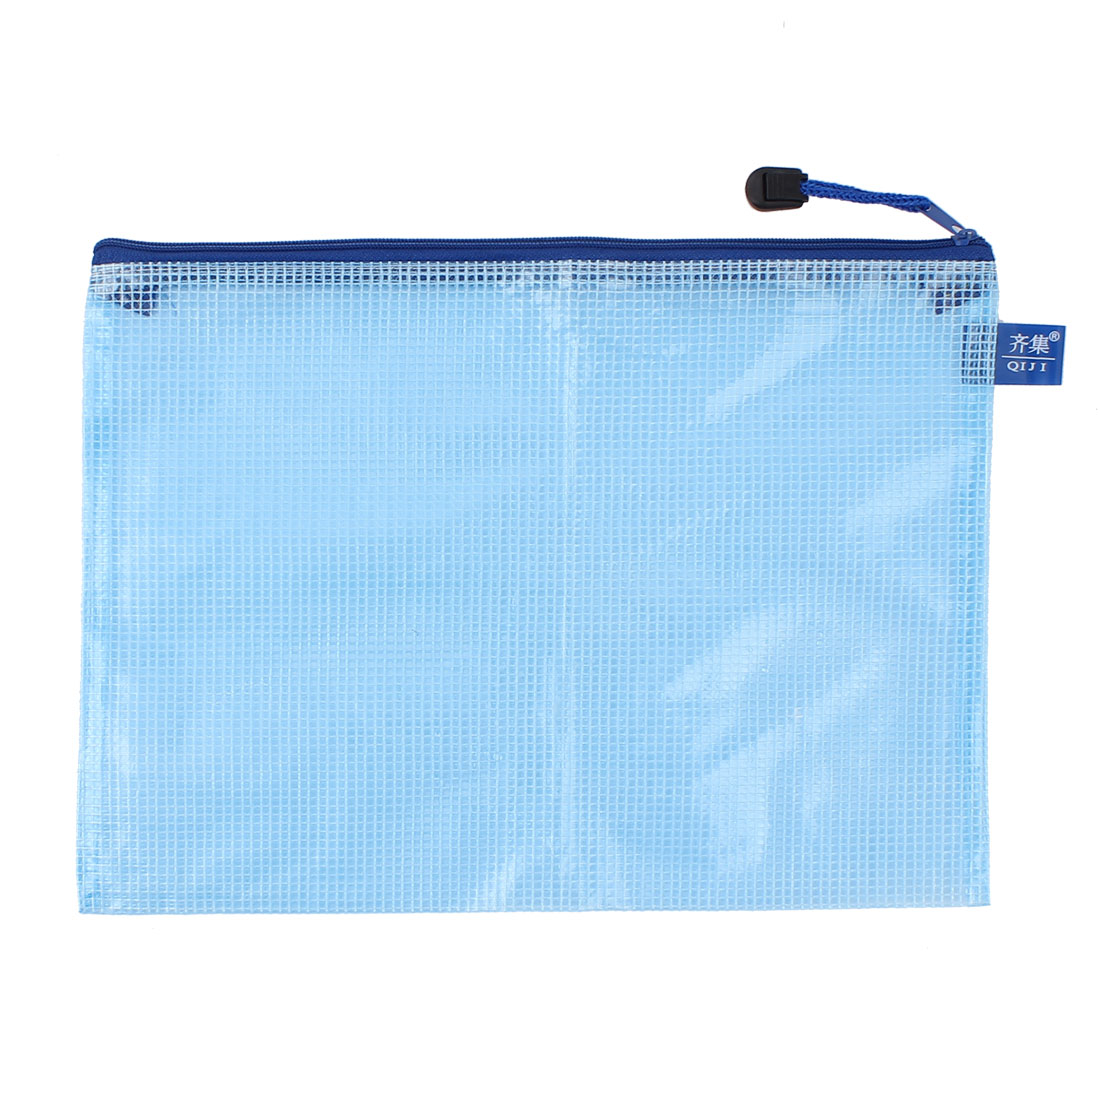 Plastic Office School Zip Up A5 Size Paper Document Art File Bag Blue 2Pcs